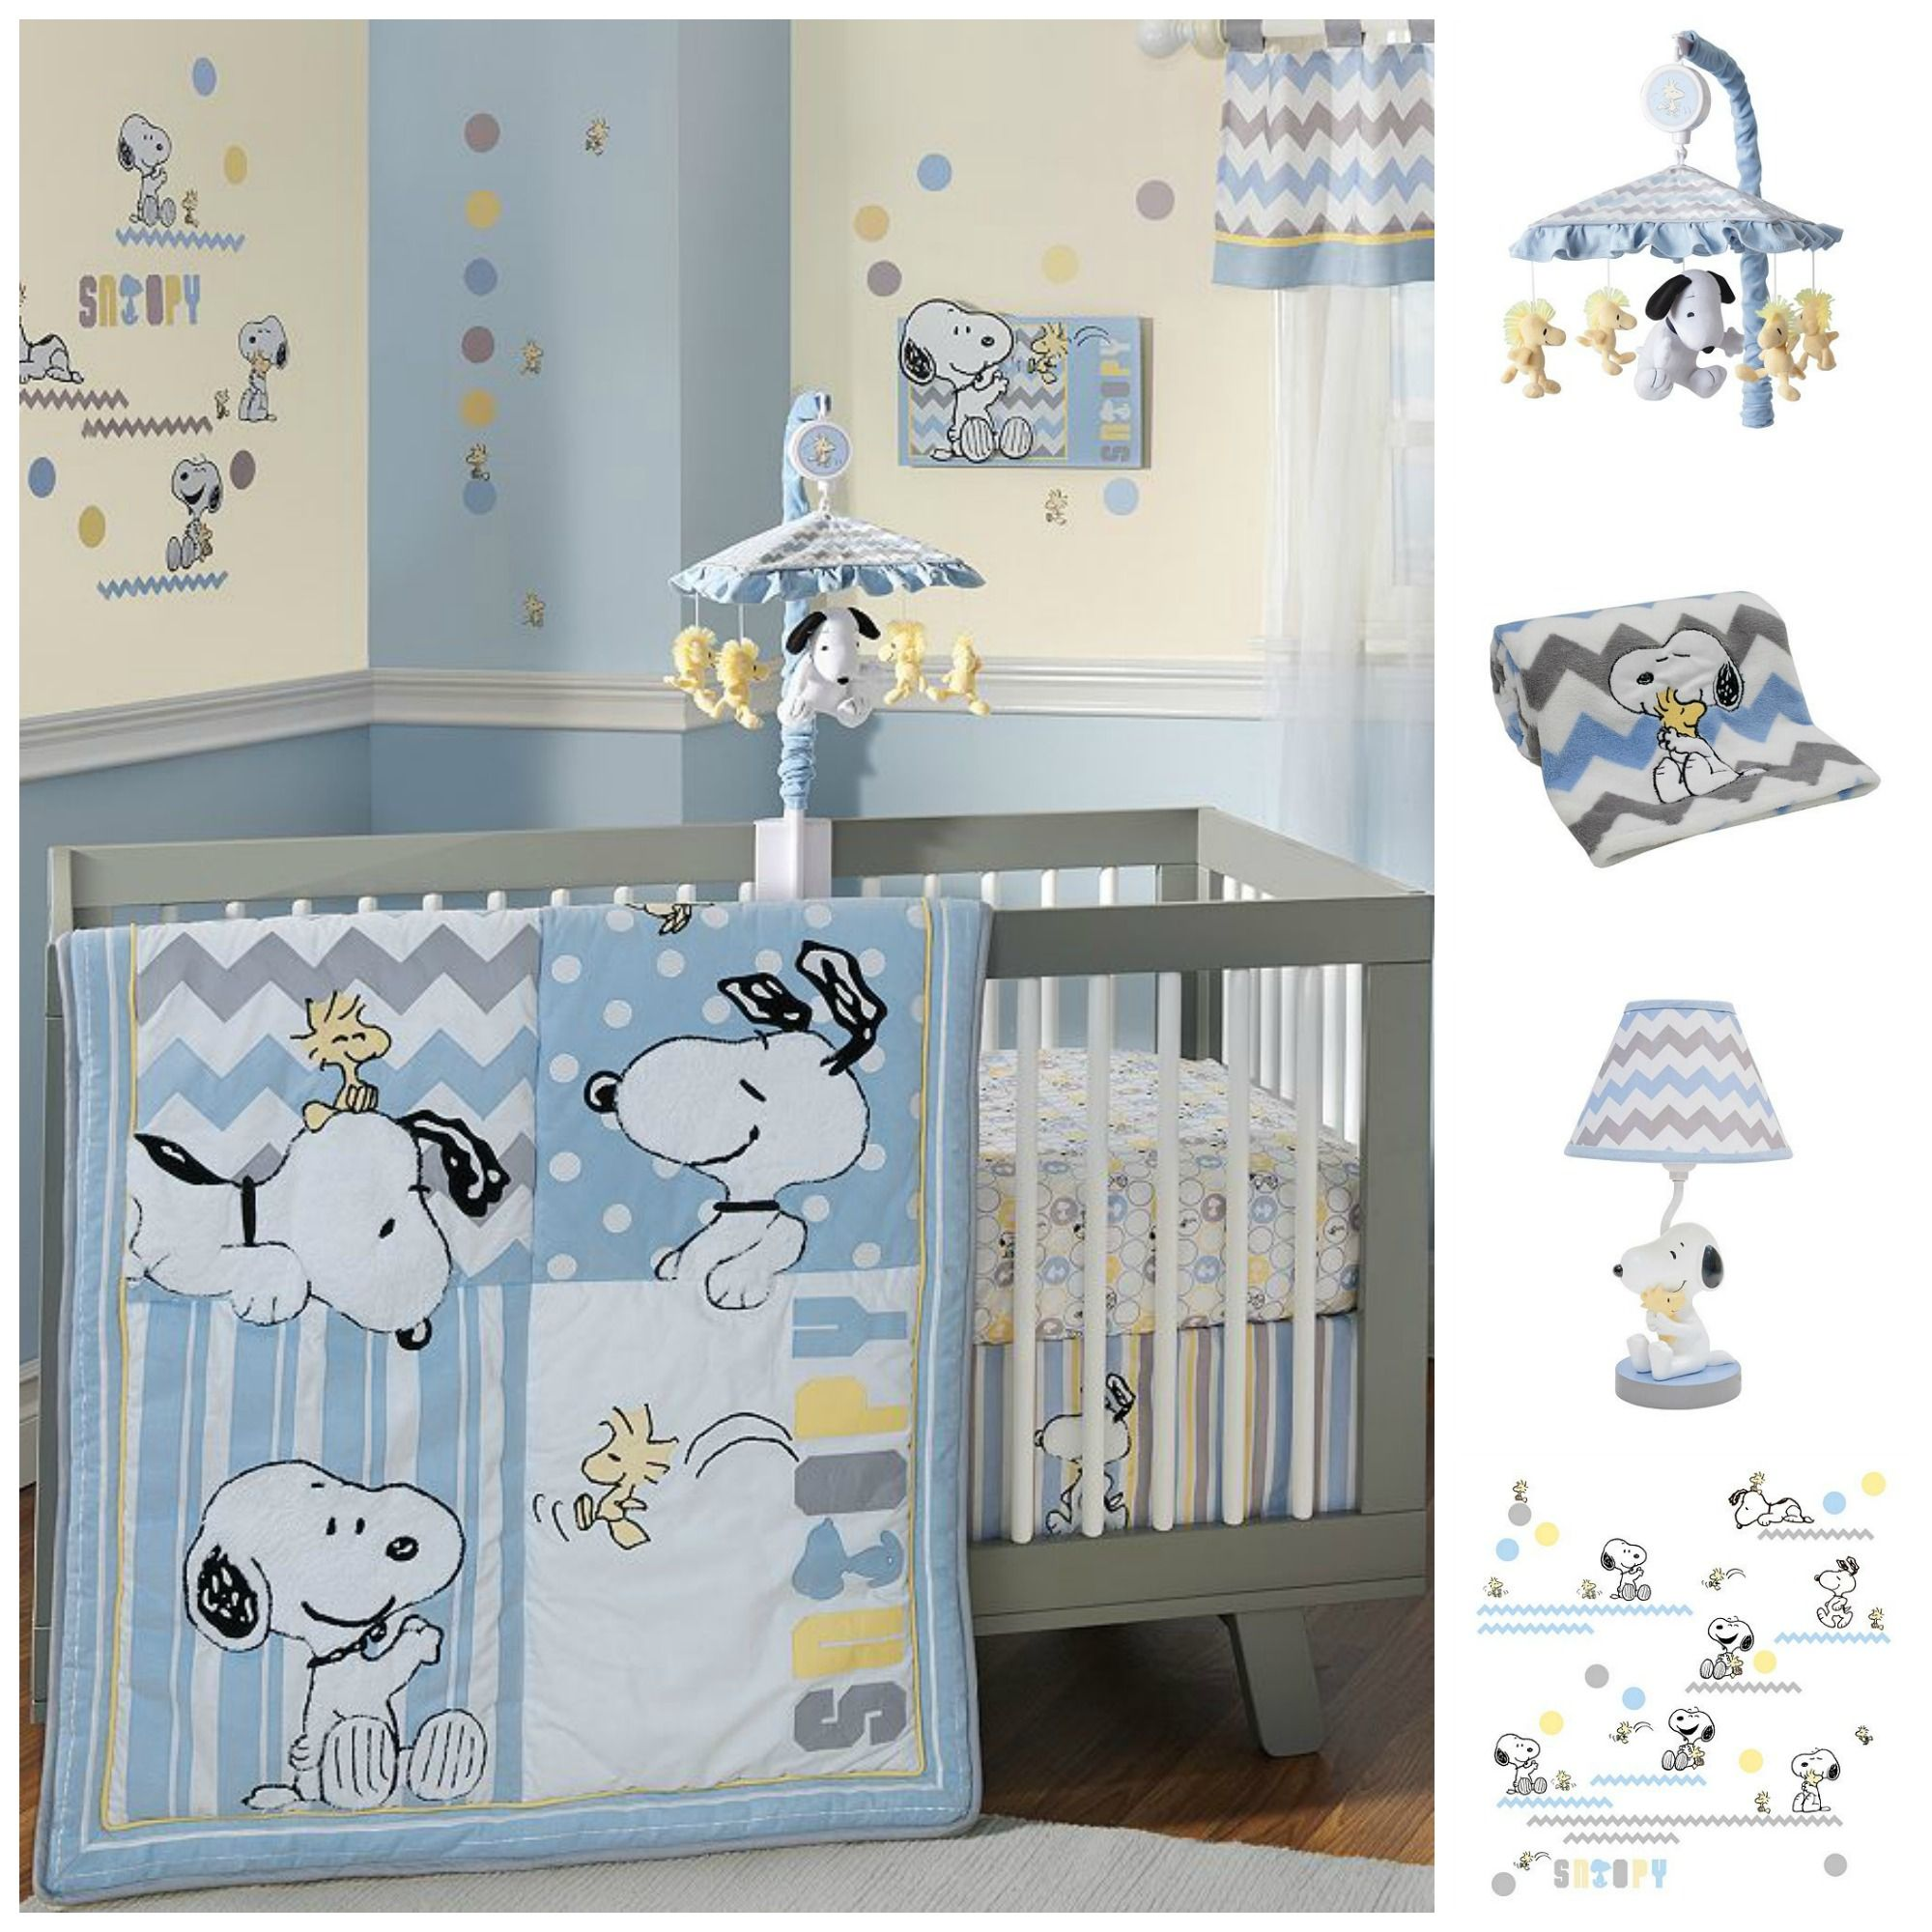 Decorate The New Baby S Room With Snoopy And Woodstock Lamp Blanket Wall Decals Would Be Perfect In Any Peanuts Themed